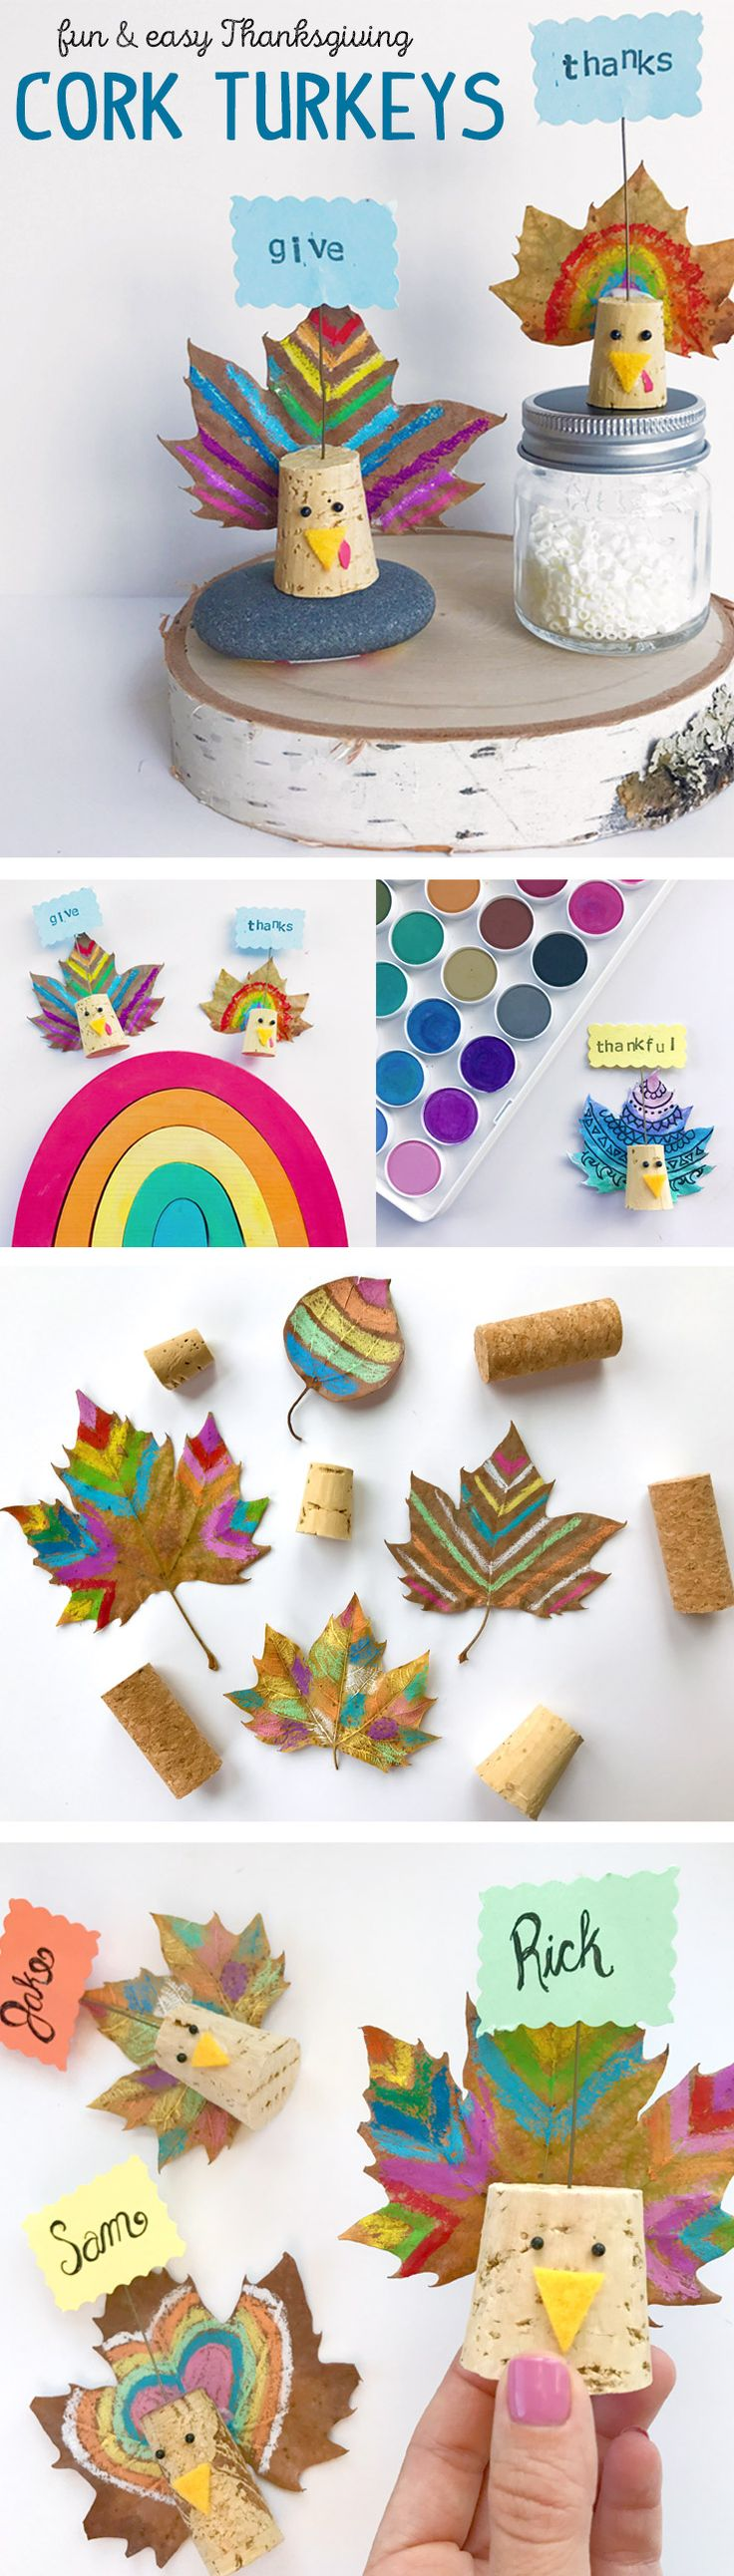 Cork Turkeys: A Fun and Easy Thanksgiving Craft for Table Decor - International Arrivals